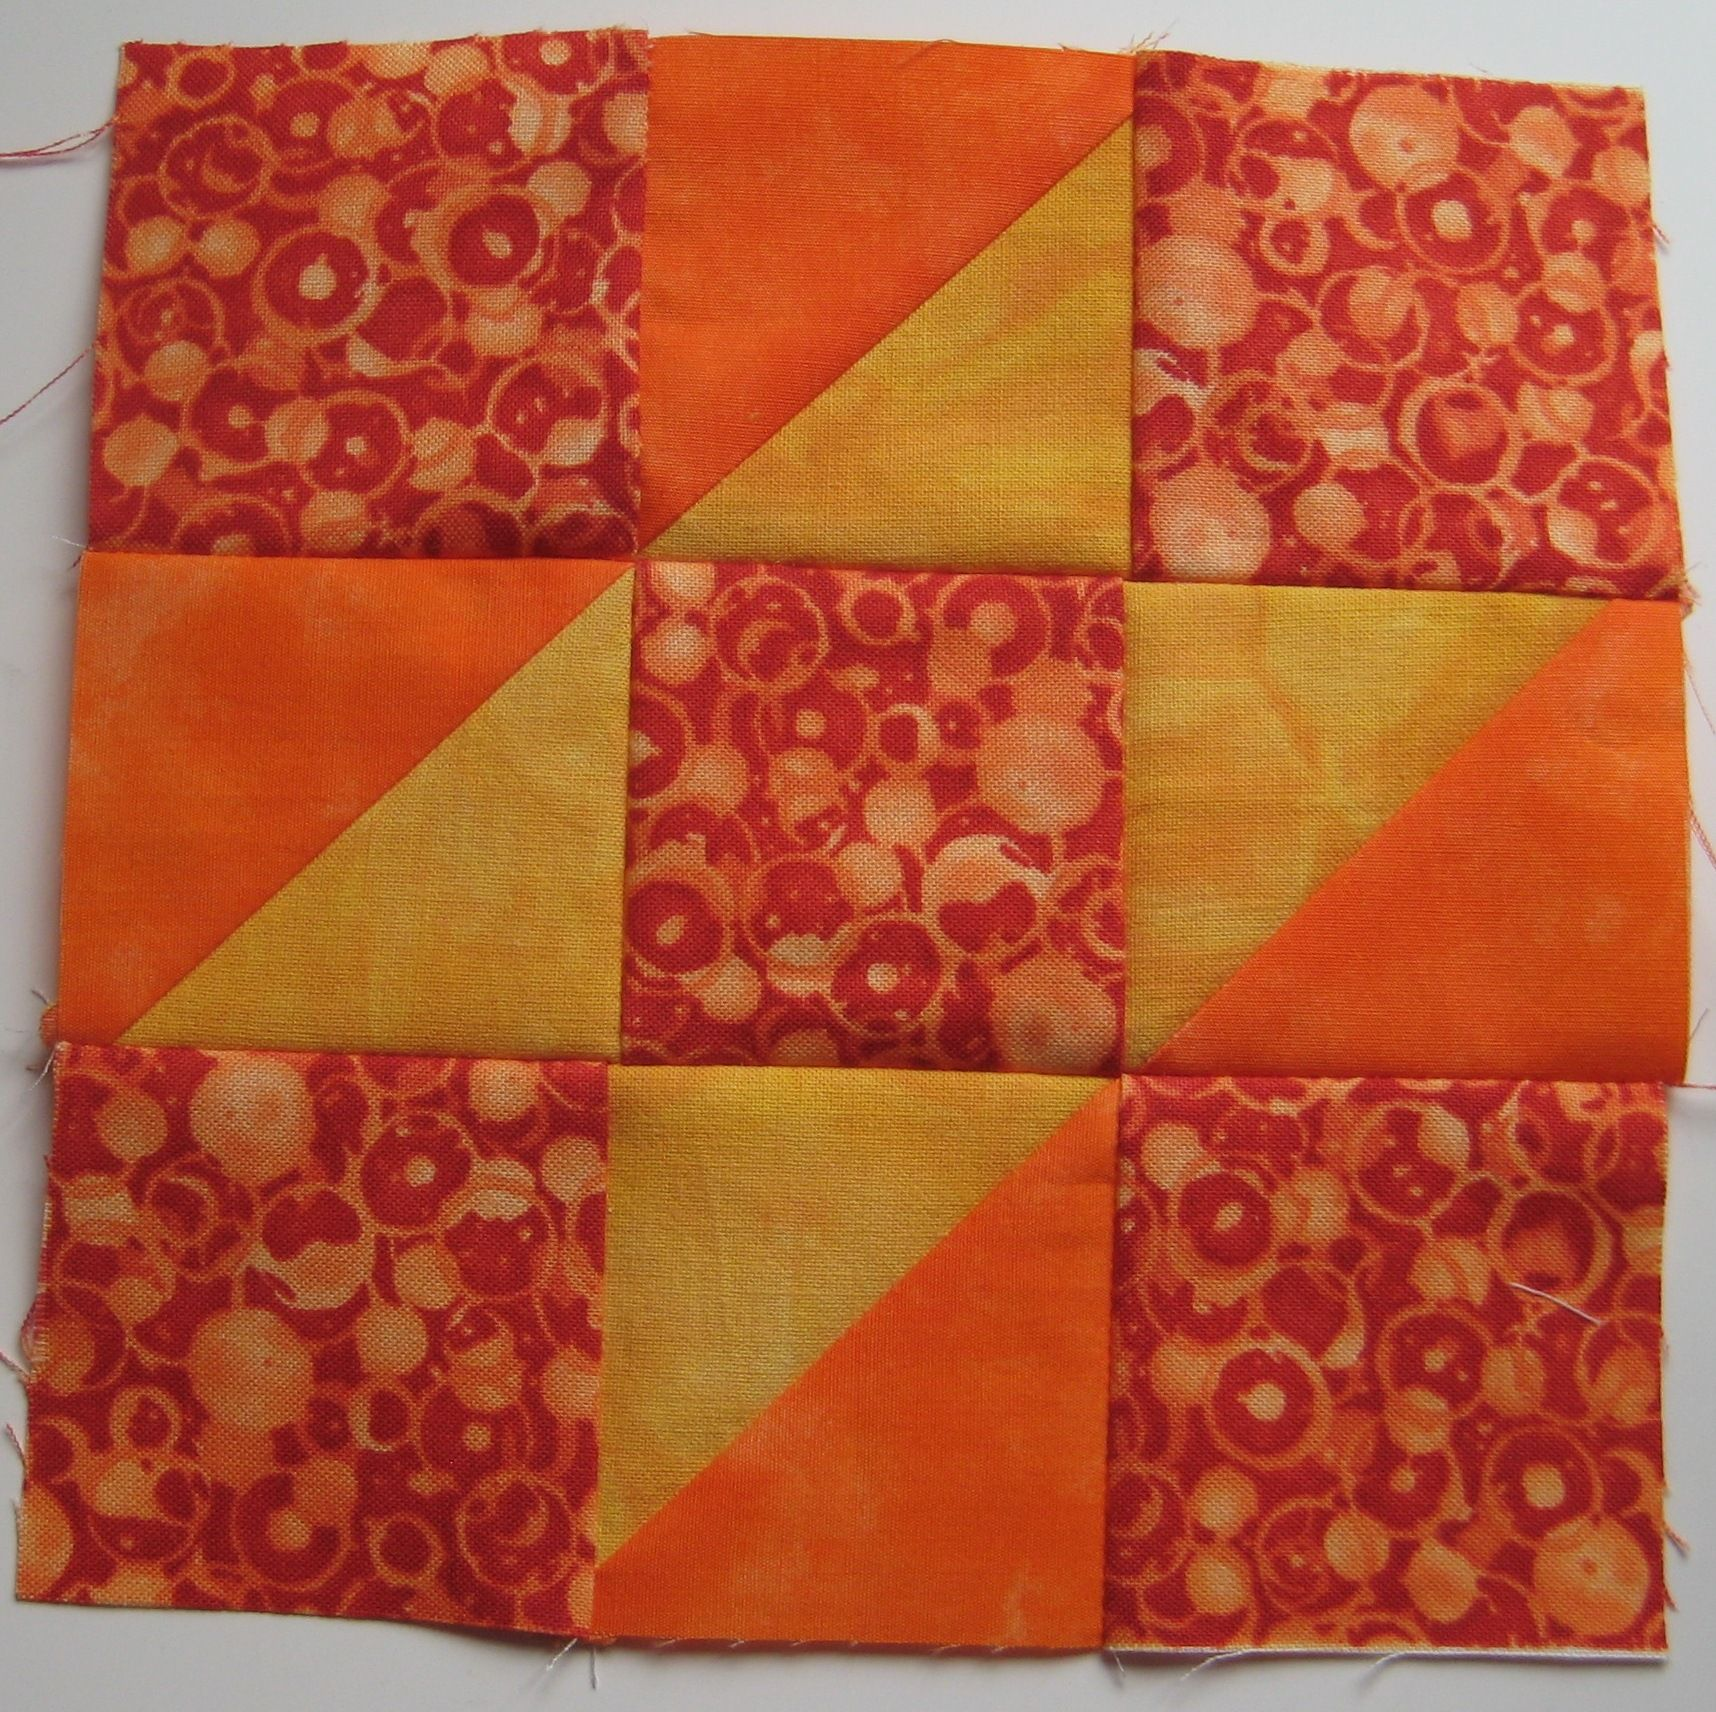 Contrary Wife block | CONTRARY WIFE / HUSBAND QUILT | Pinterest ... : contrary wife quilt block - Adamdwight.com